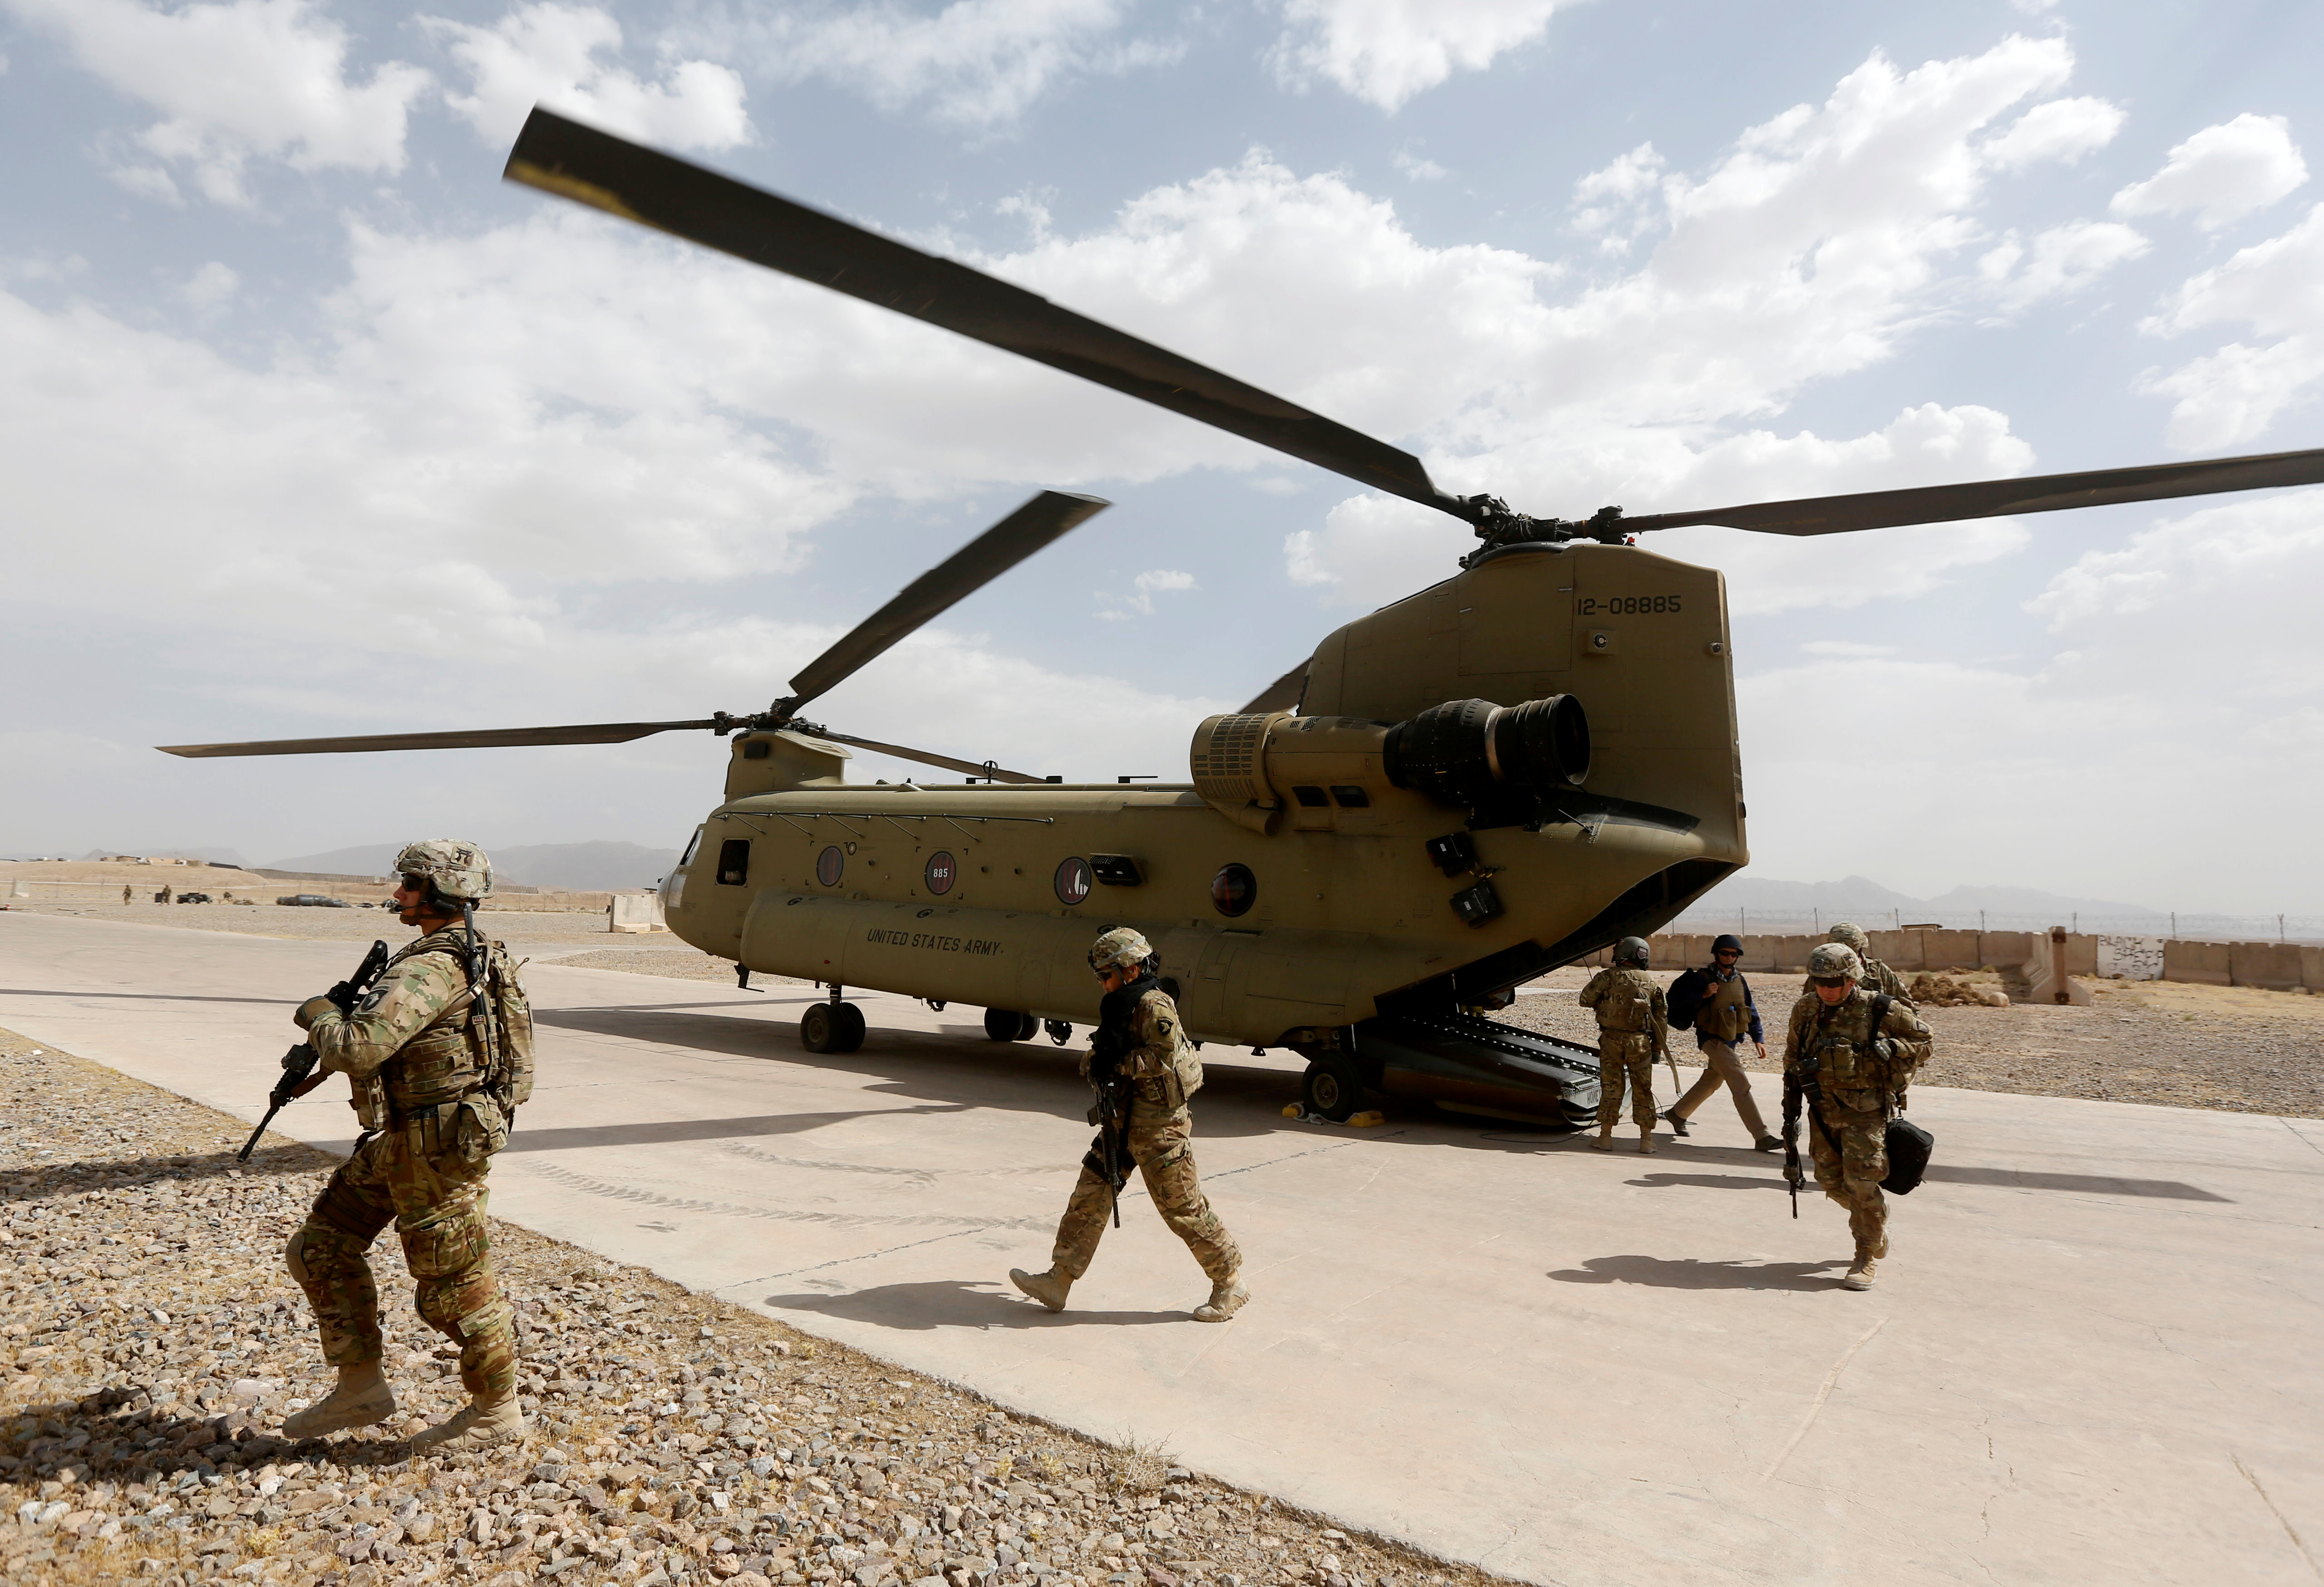 essay against war in afghanistan Afghanistan is also a country that has dealt with internal strife in the form of civil war that has aided in its instability.